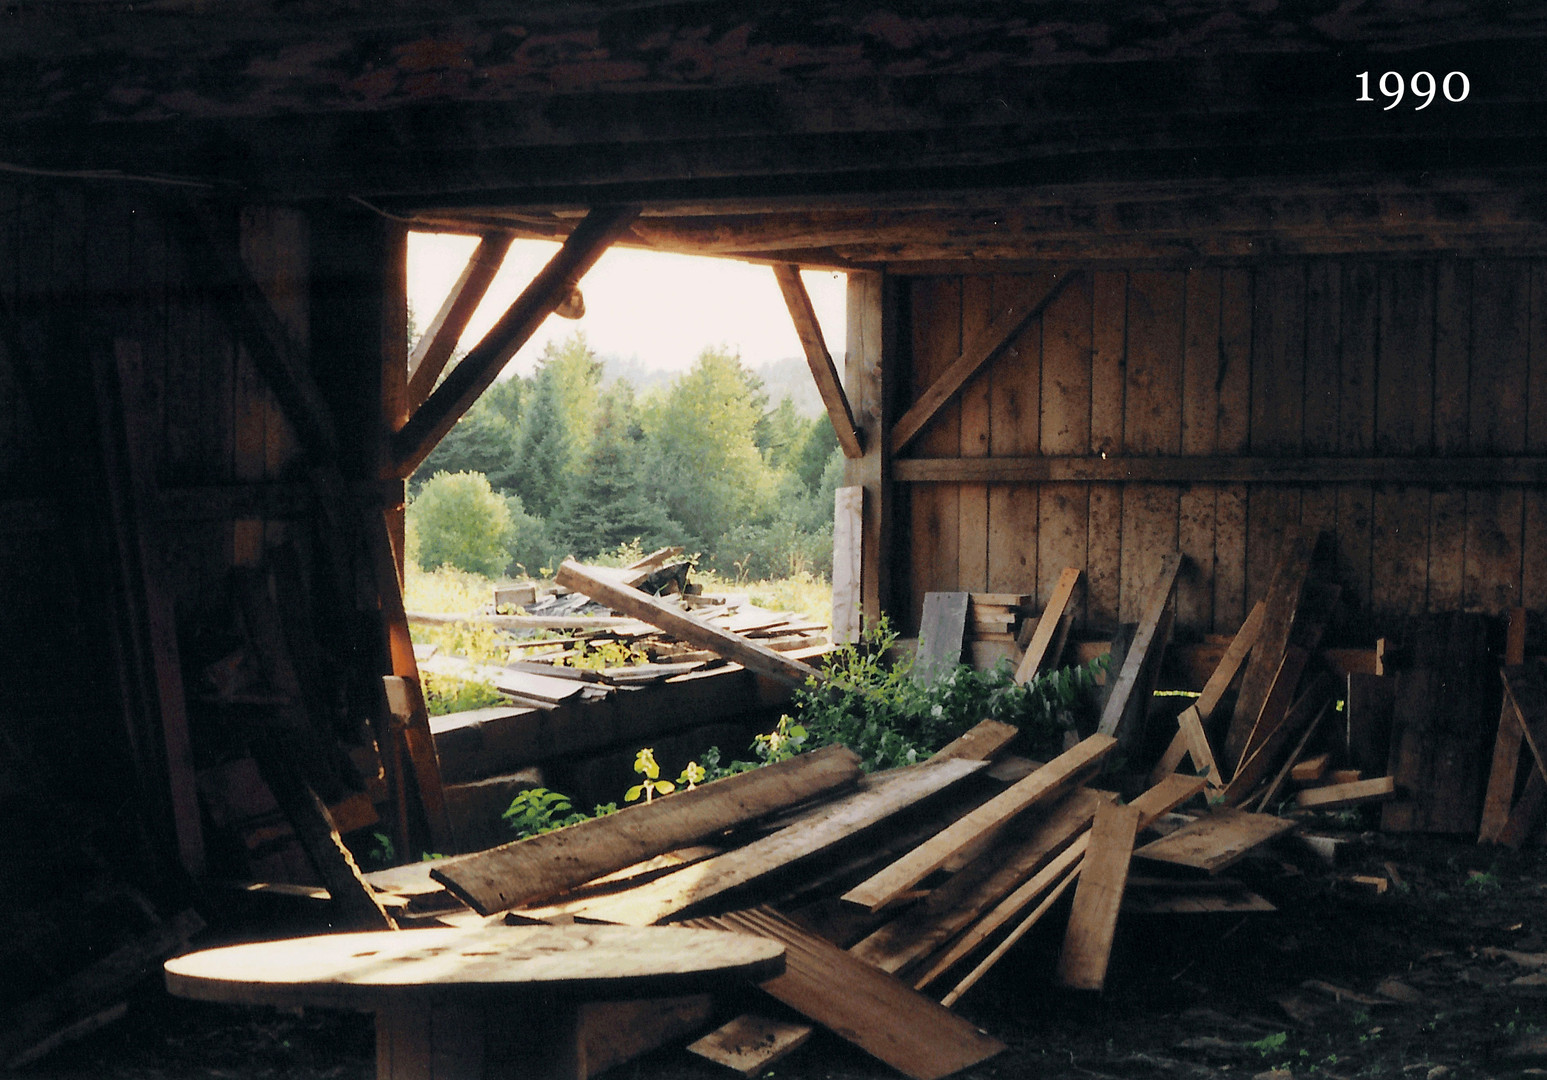 1990Broken-Barn copy.jpg